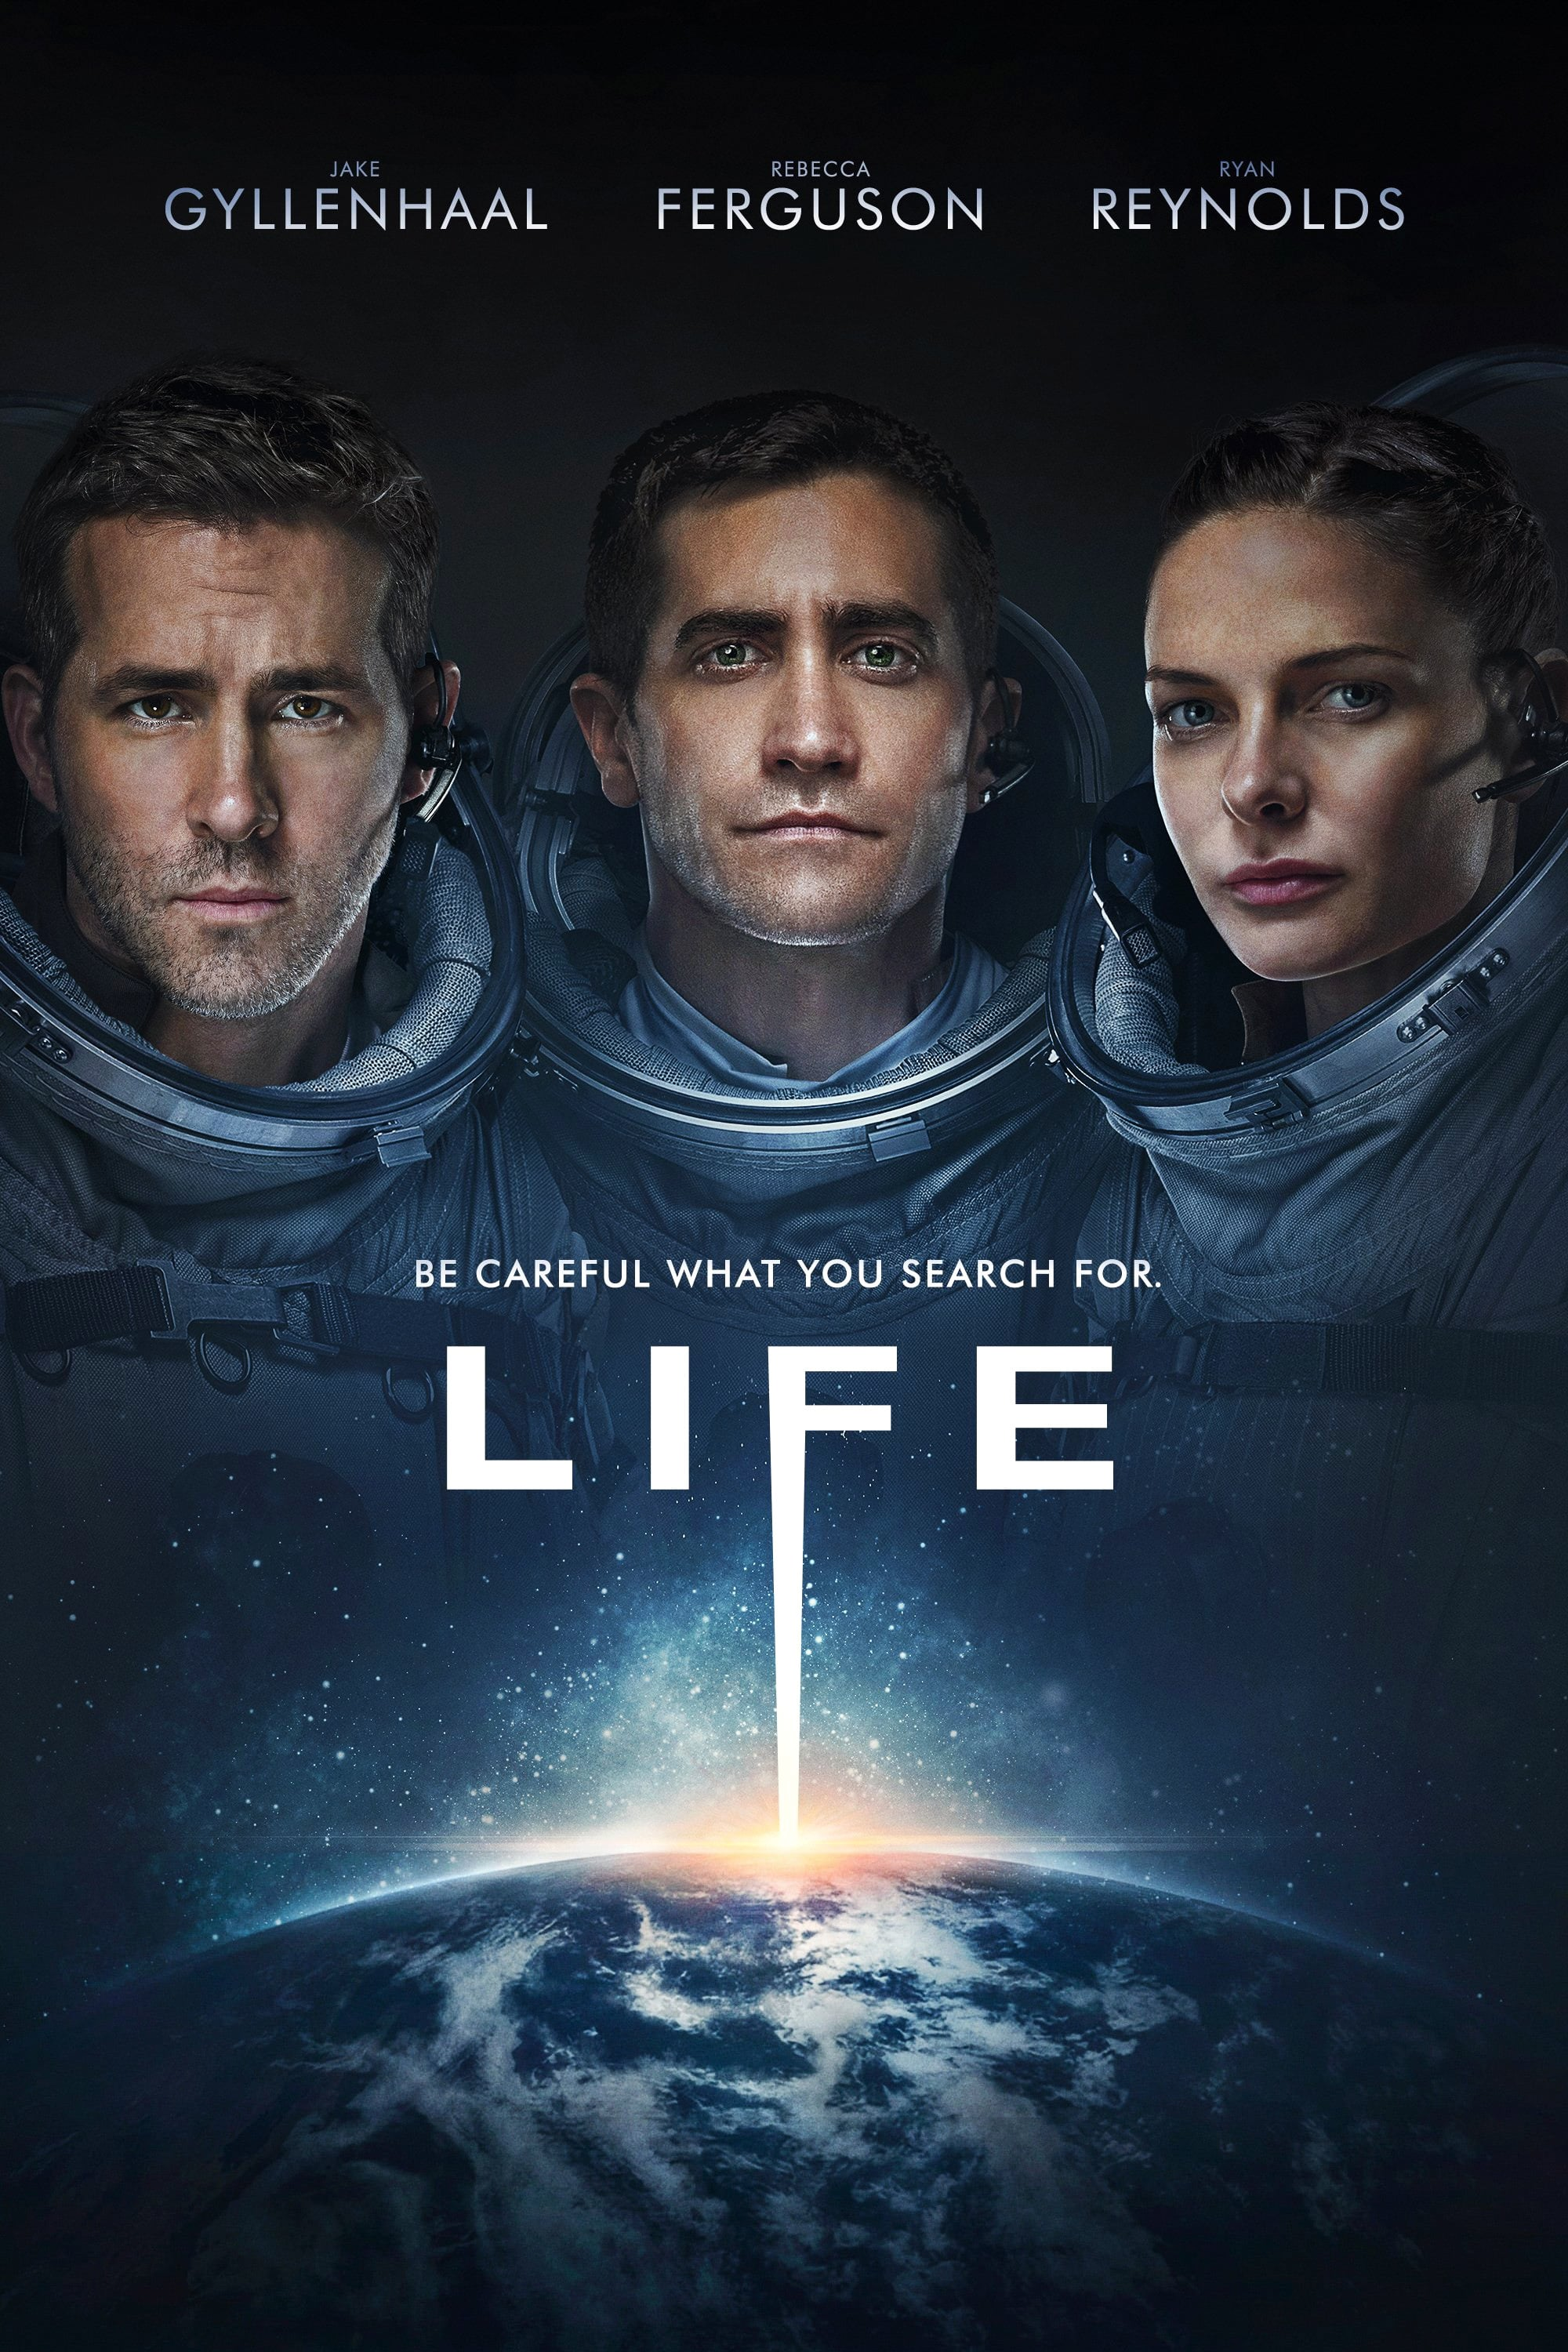 Watch Life (2017) Online Free - 123Movies Full HD Movie